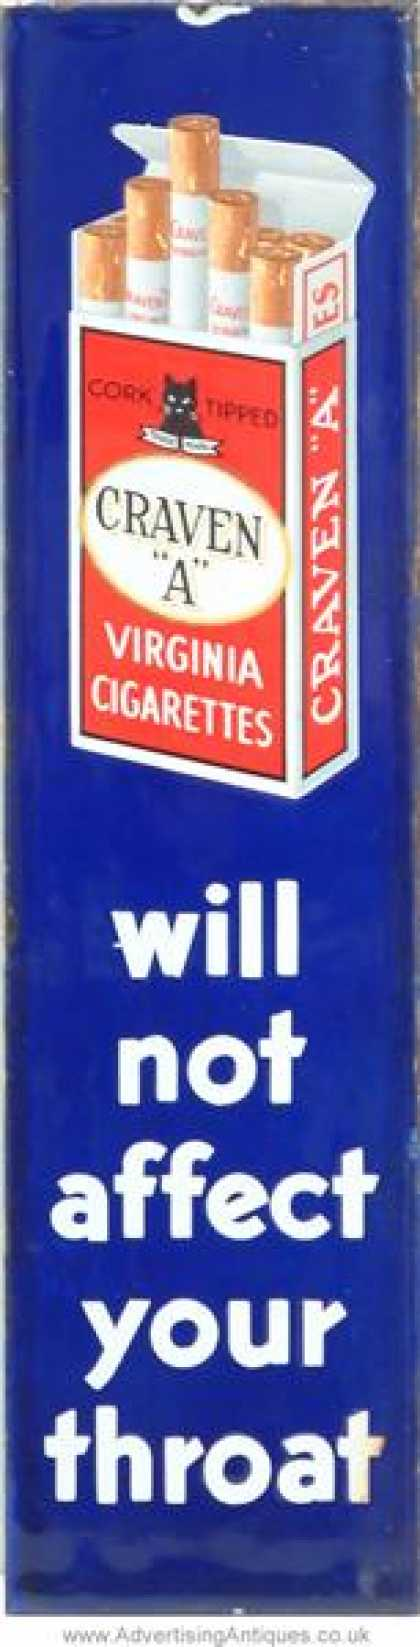 How much does it cost to make a Kent cigarette